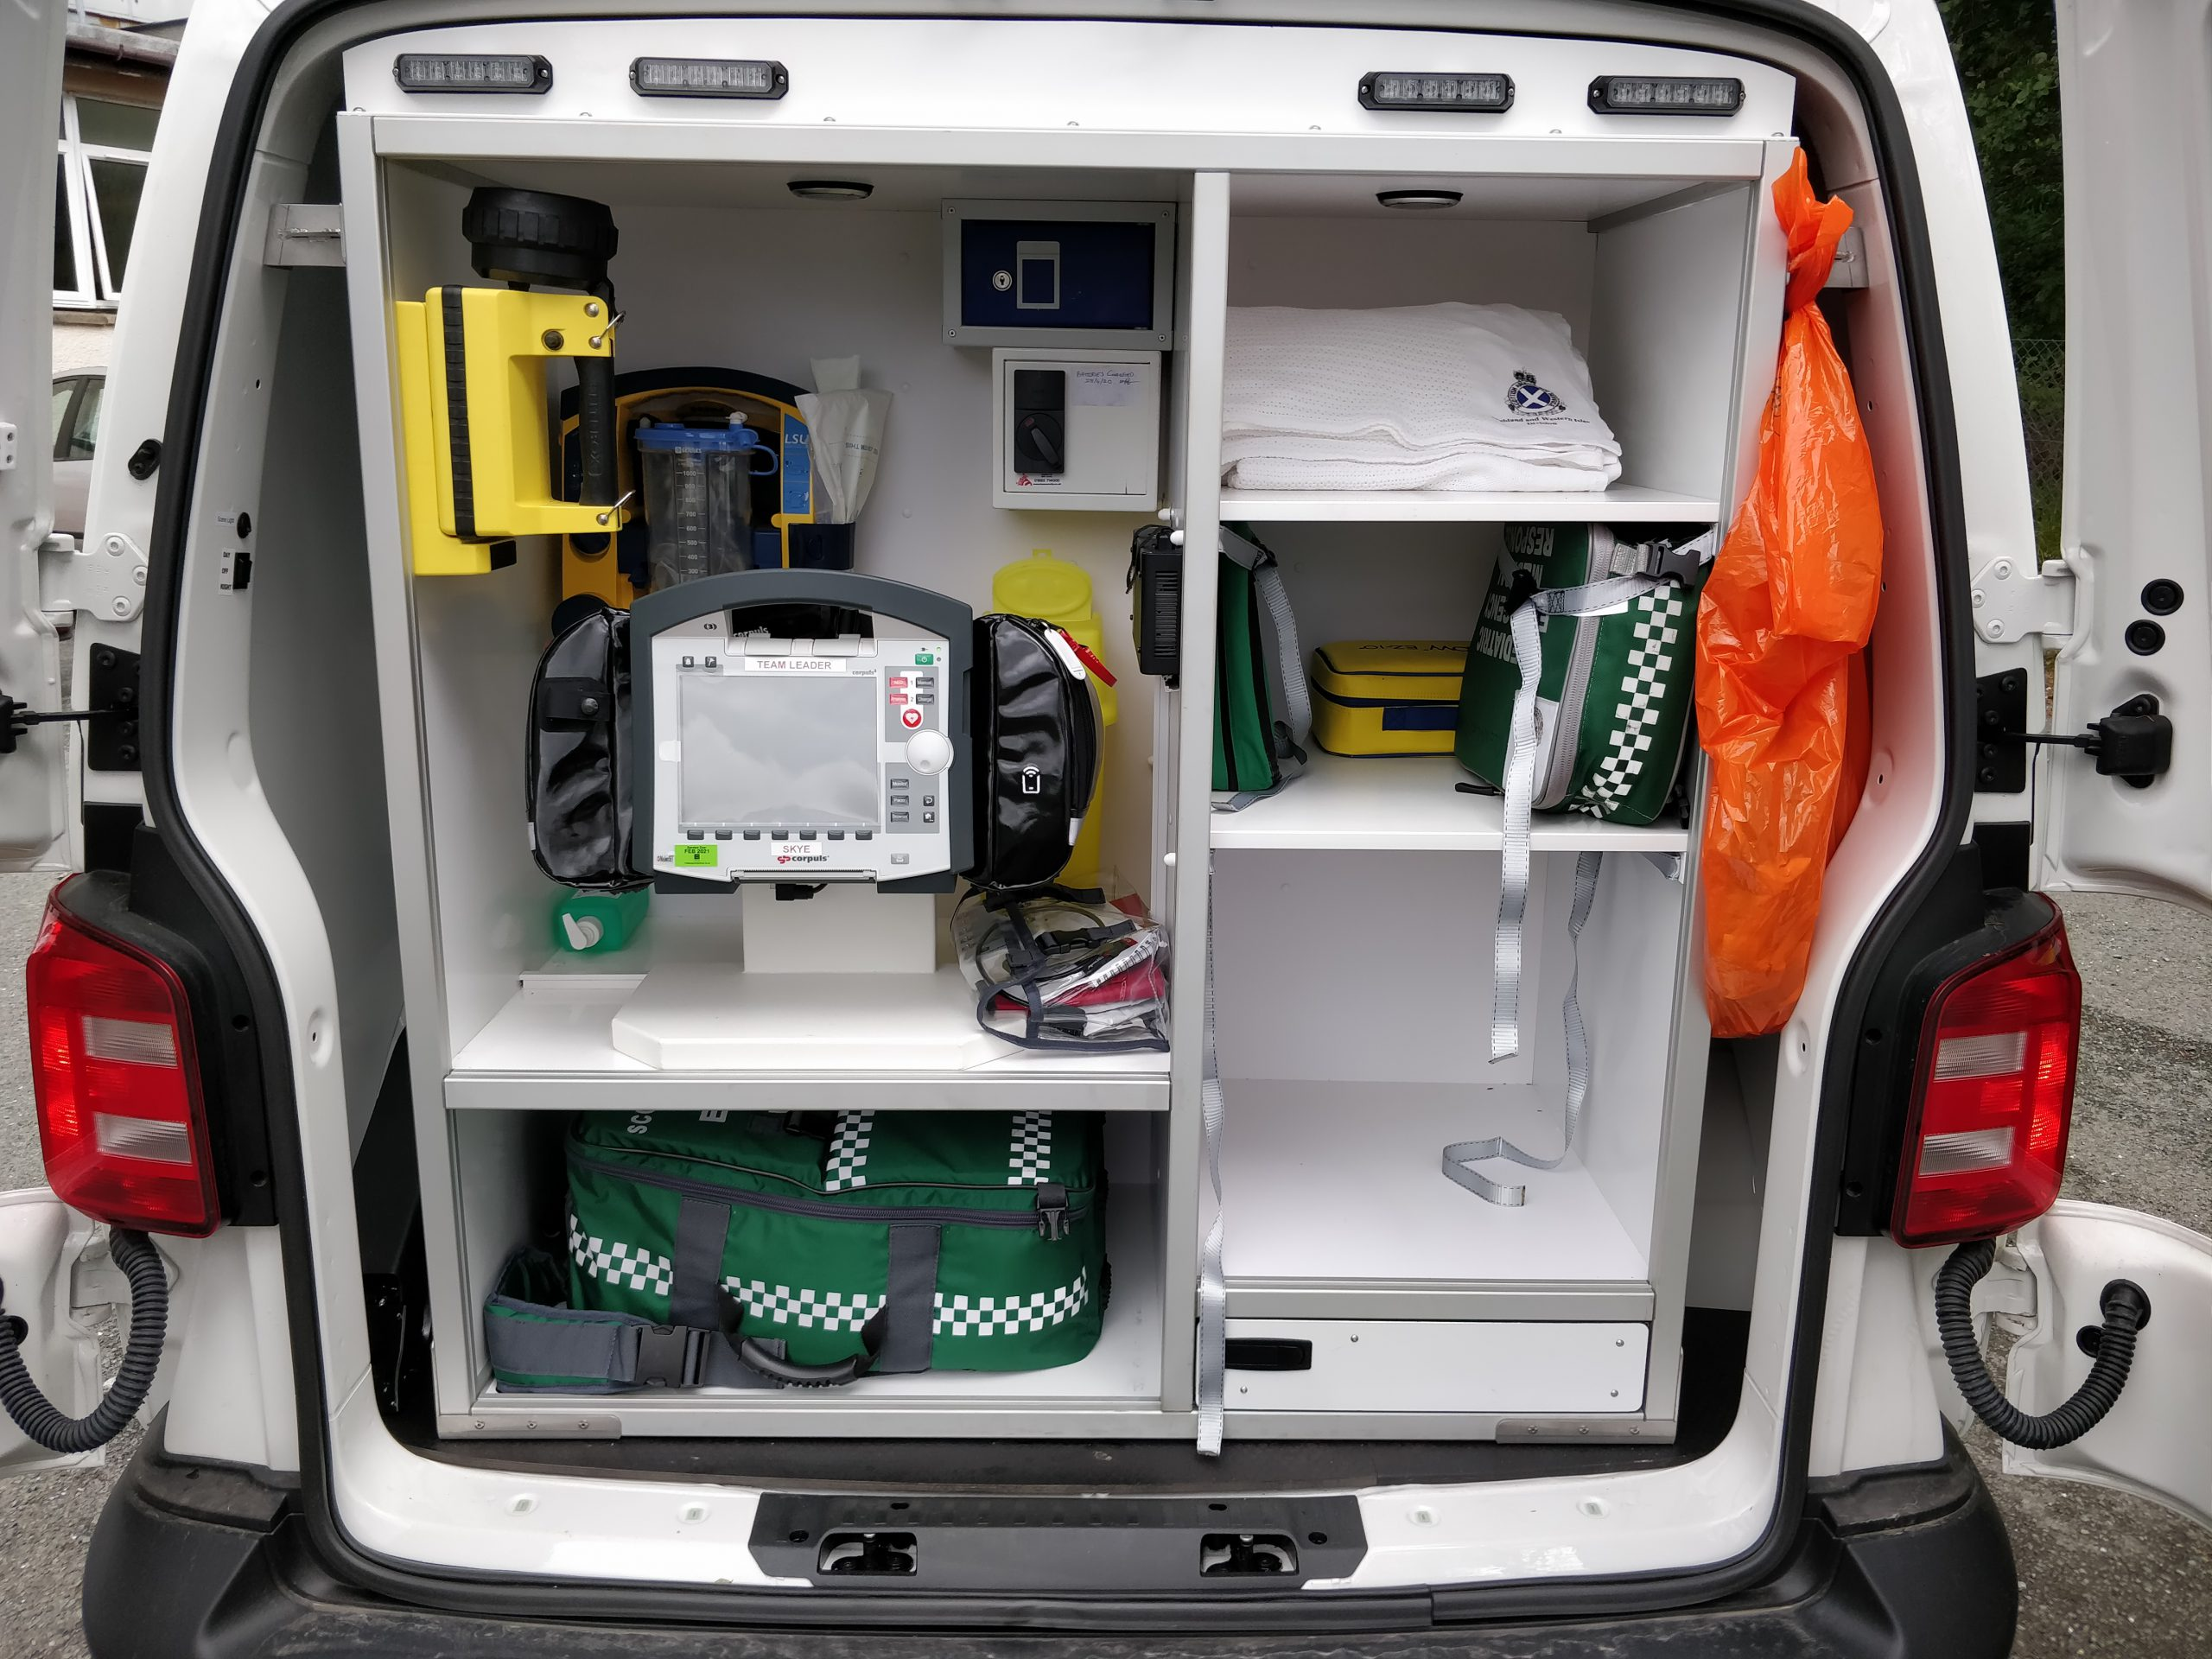 The rapid response unit as viewed from the back with the doors open. The equipment inside includes a defibrillator.